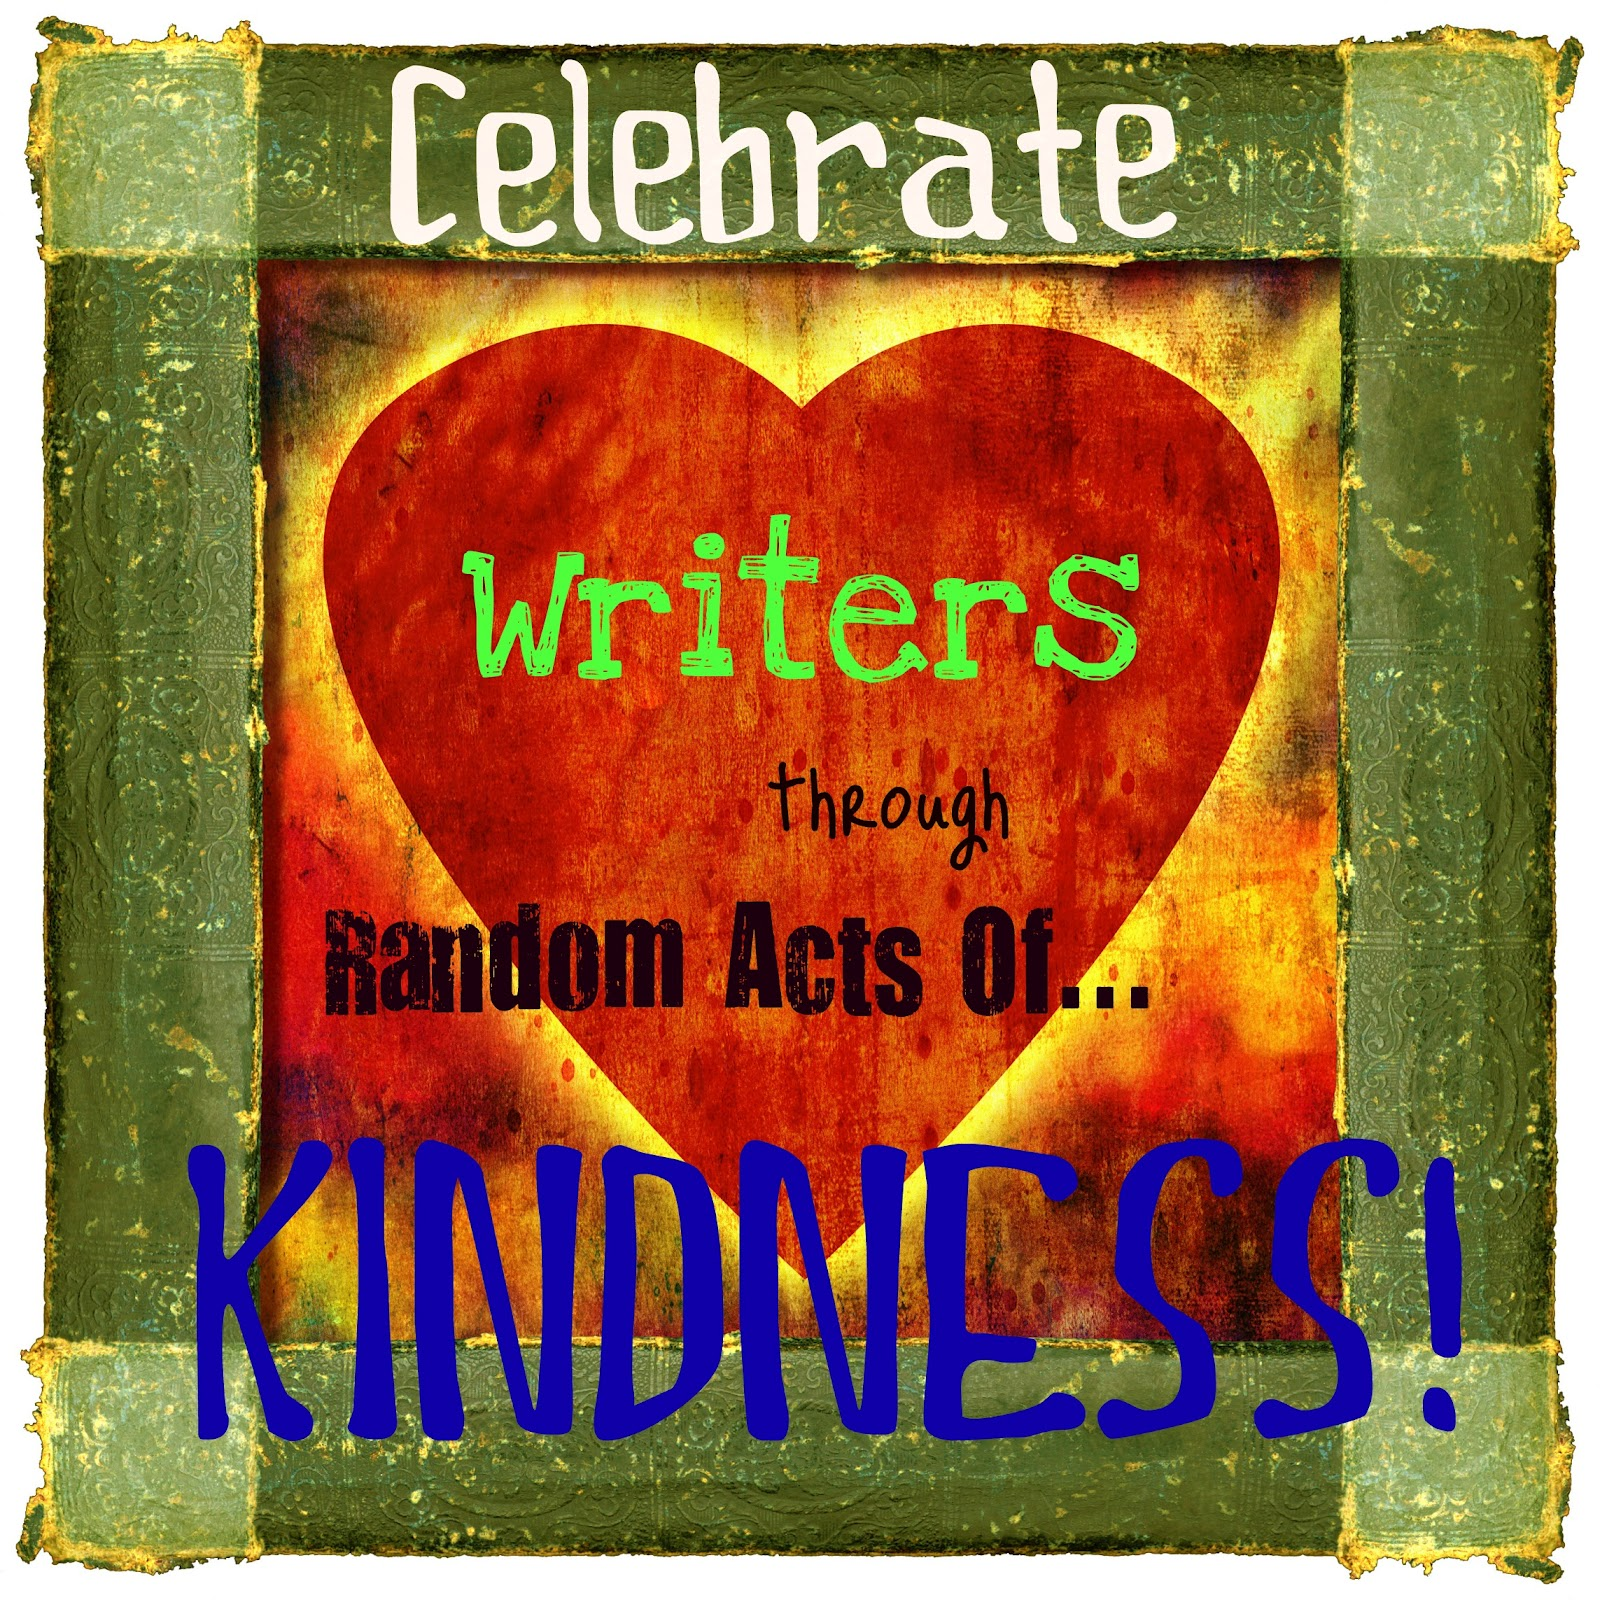 500 word essay on a random act of kindness small acts of kindness essay random acts of kindness ideas businesses small acts of kindness essay random acts of kindness ideas businesses